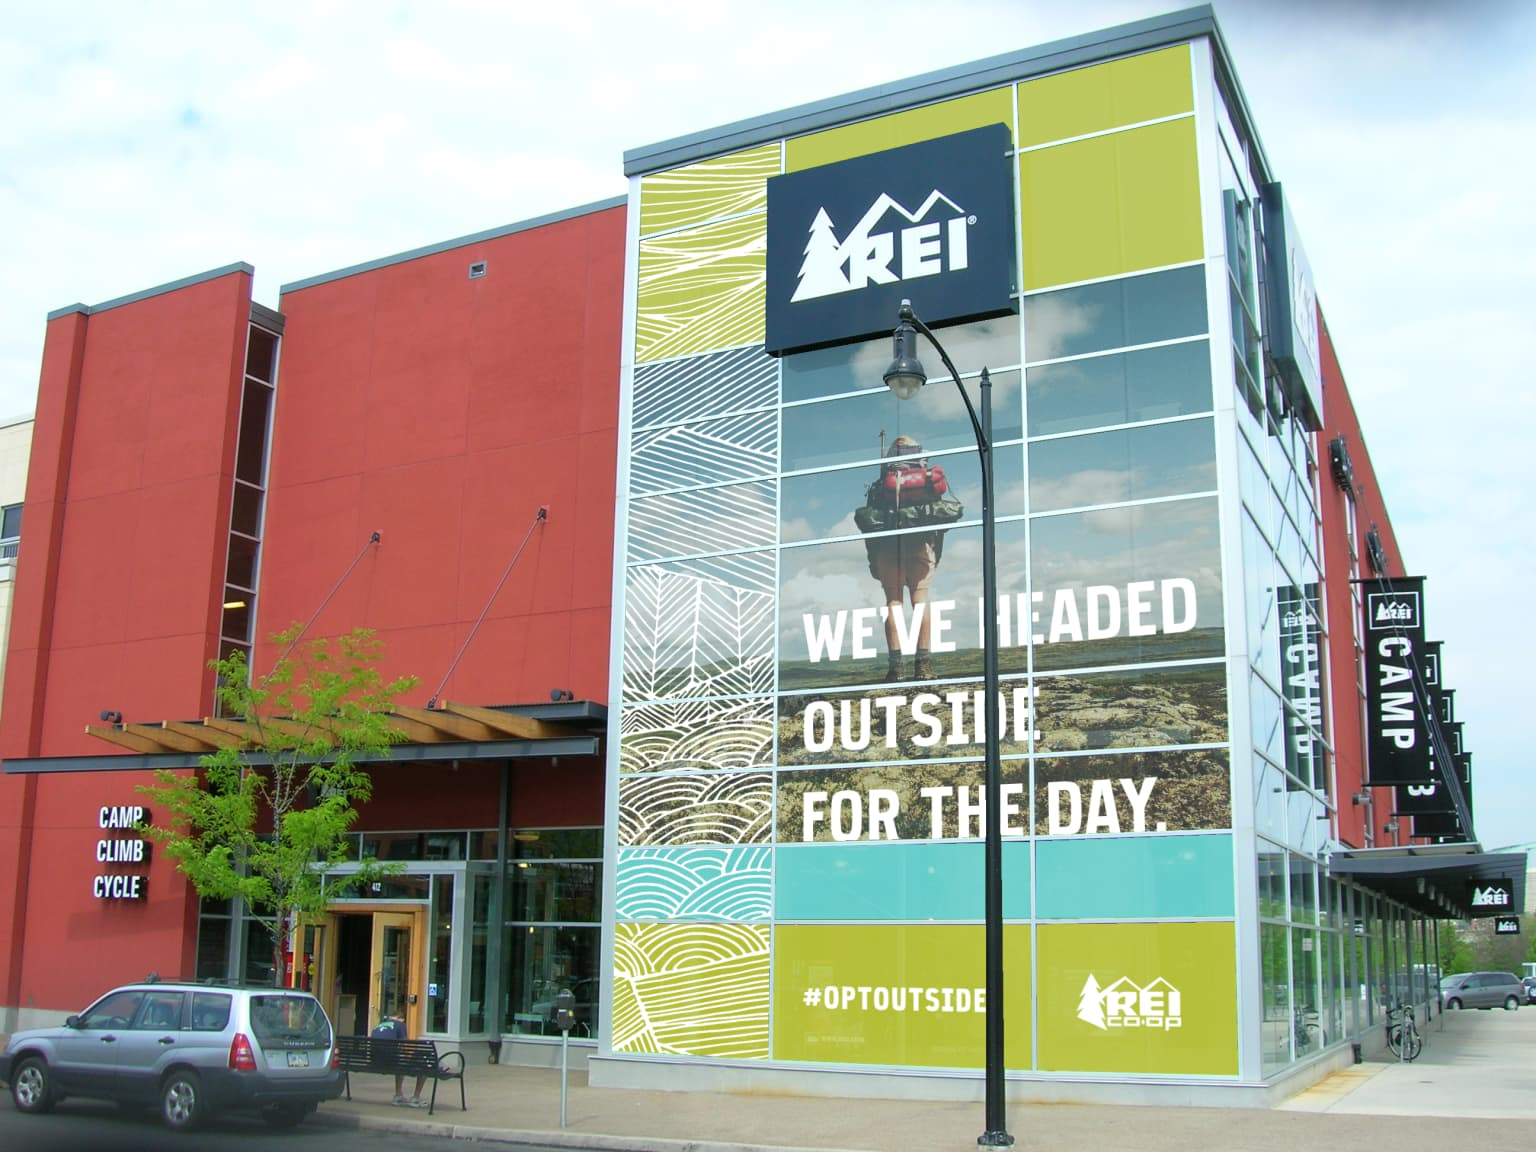 REI : OPT OUTSIDE